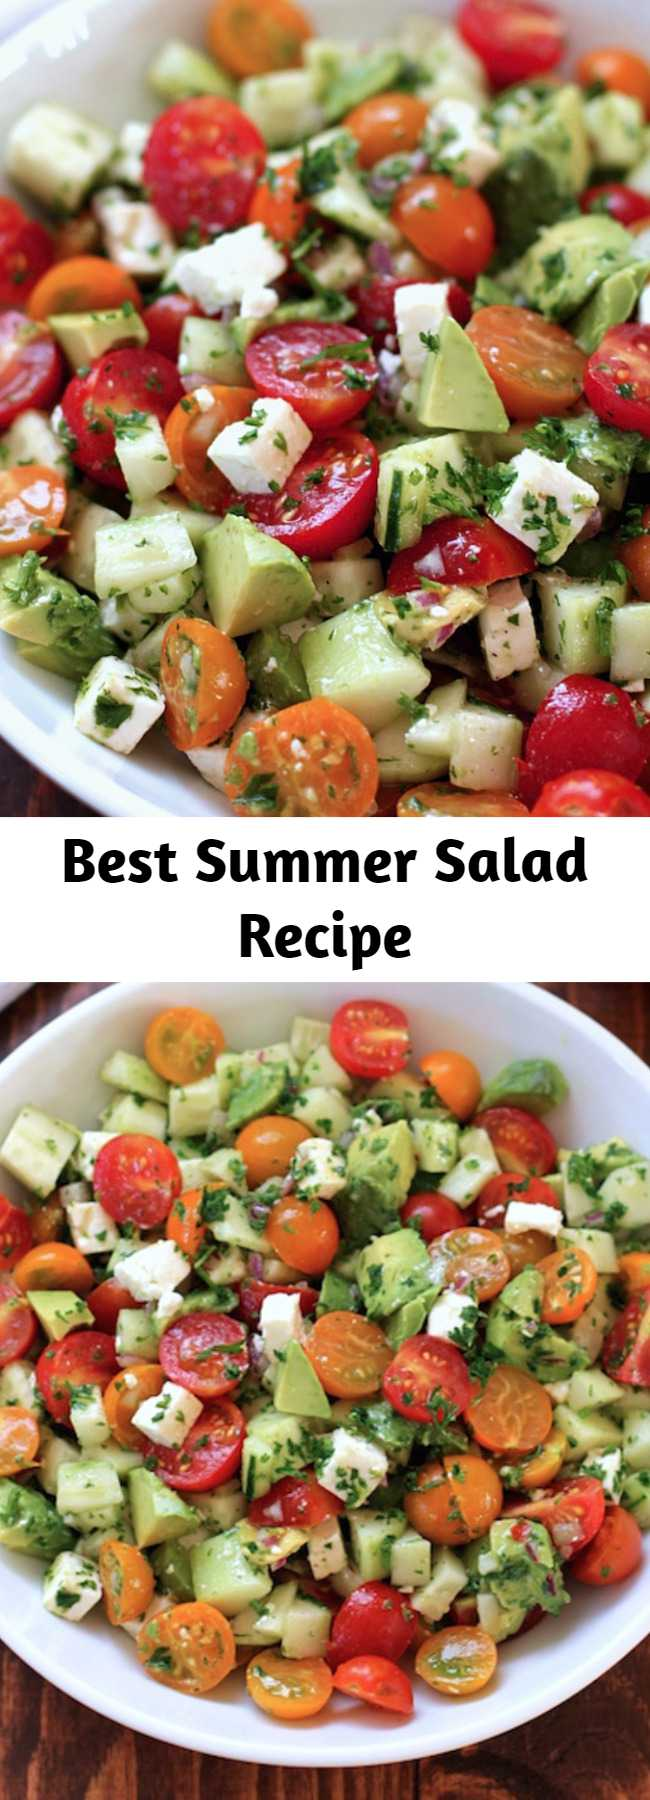 Best Summer Salad Recipe - This tomato, cucumber, avocado salad is an easy, healthy, flavorful summer salad.  It's crunchy, fresh and simple to make.  It's a family favorite and ready in less than 15 minutes.